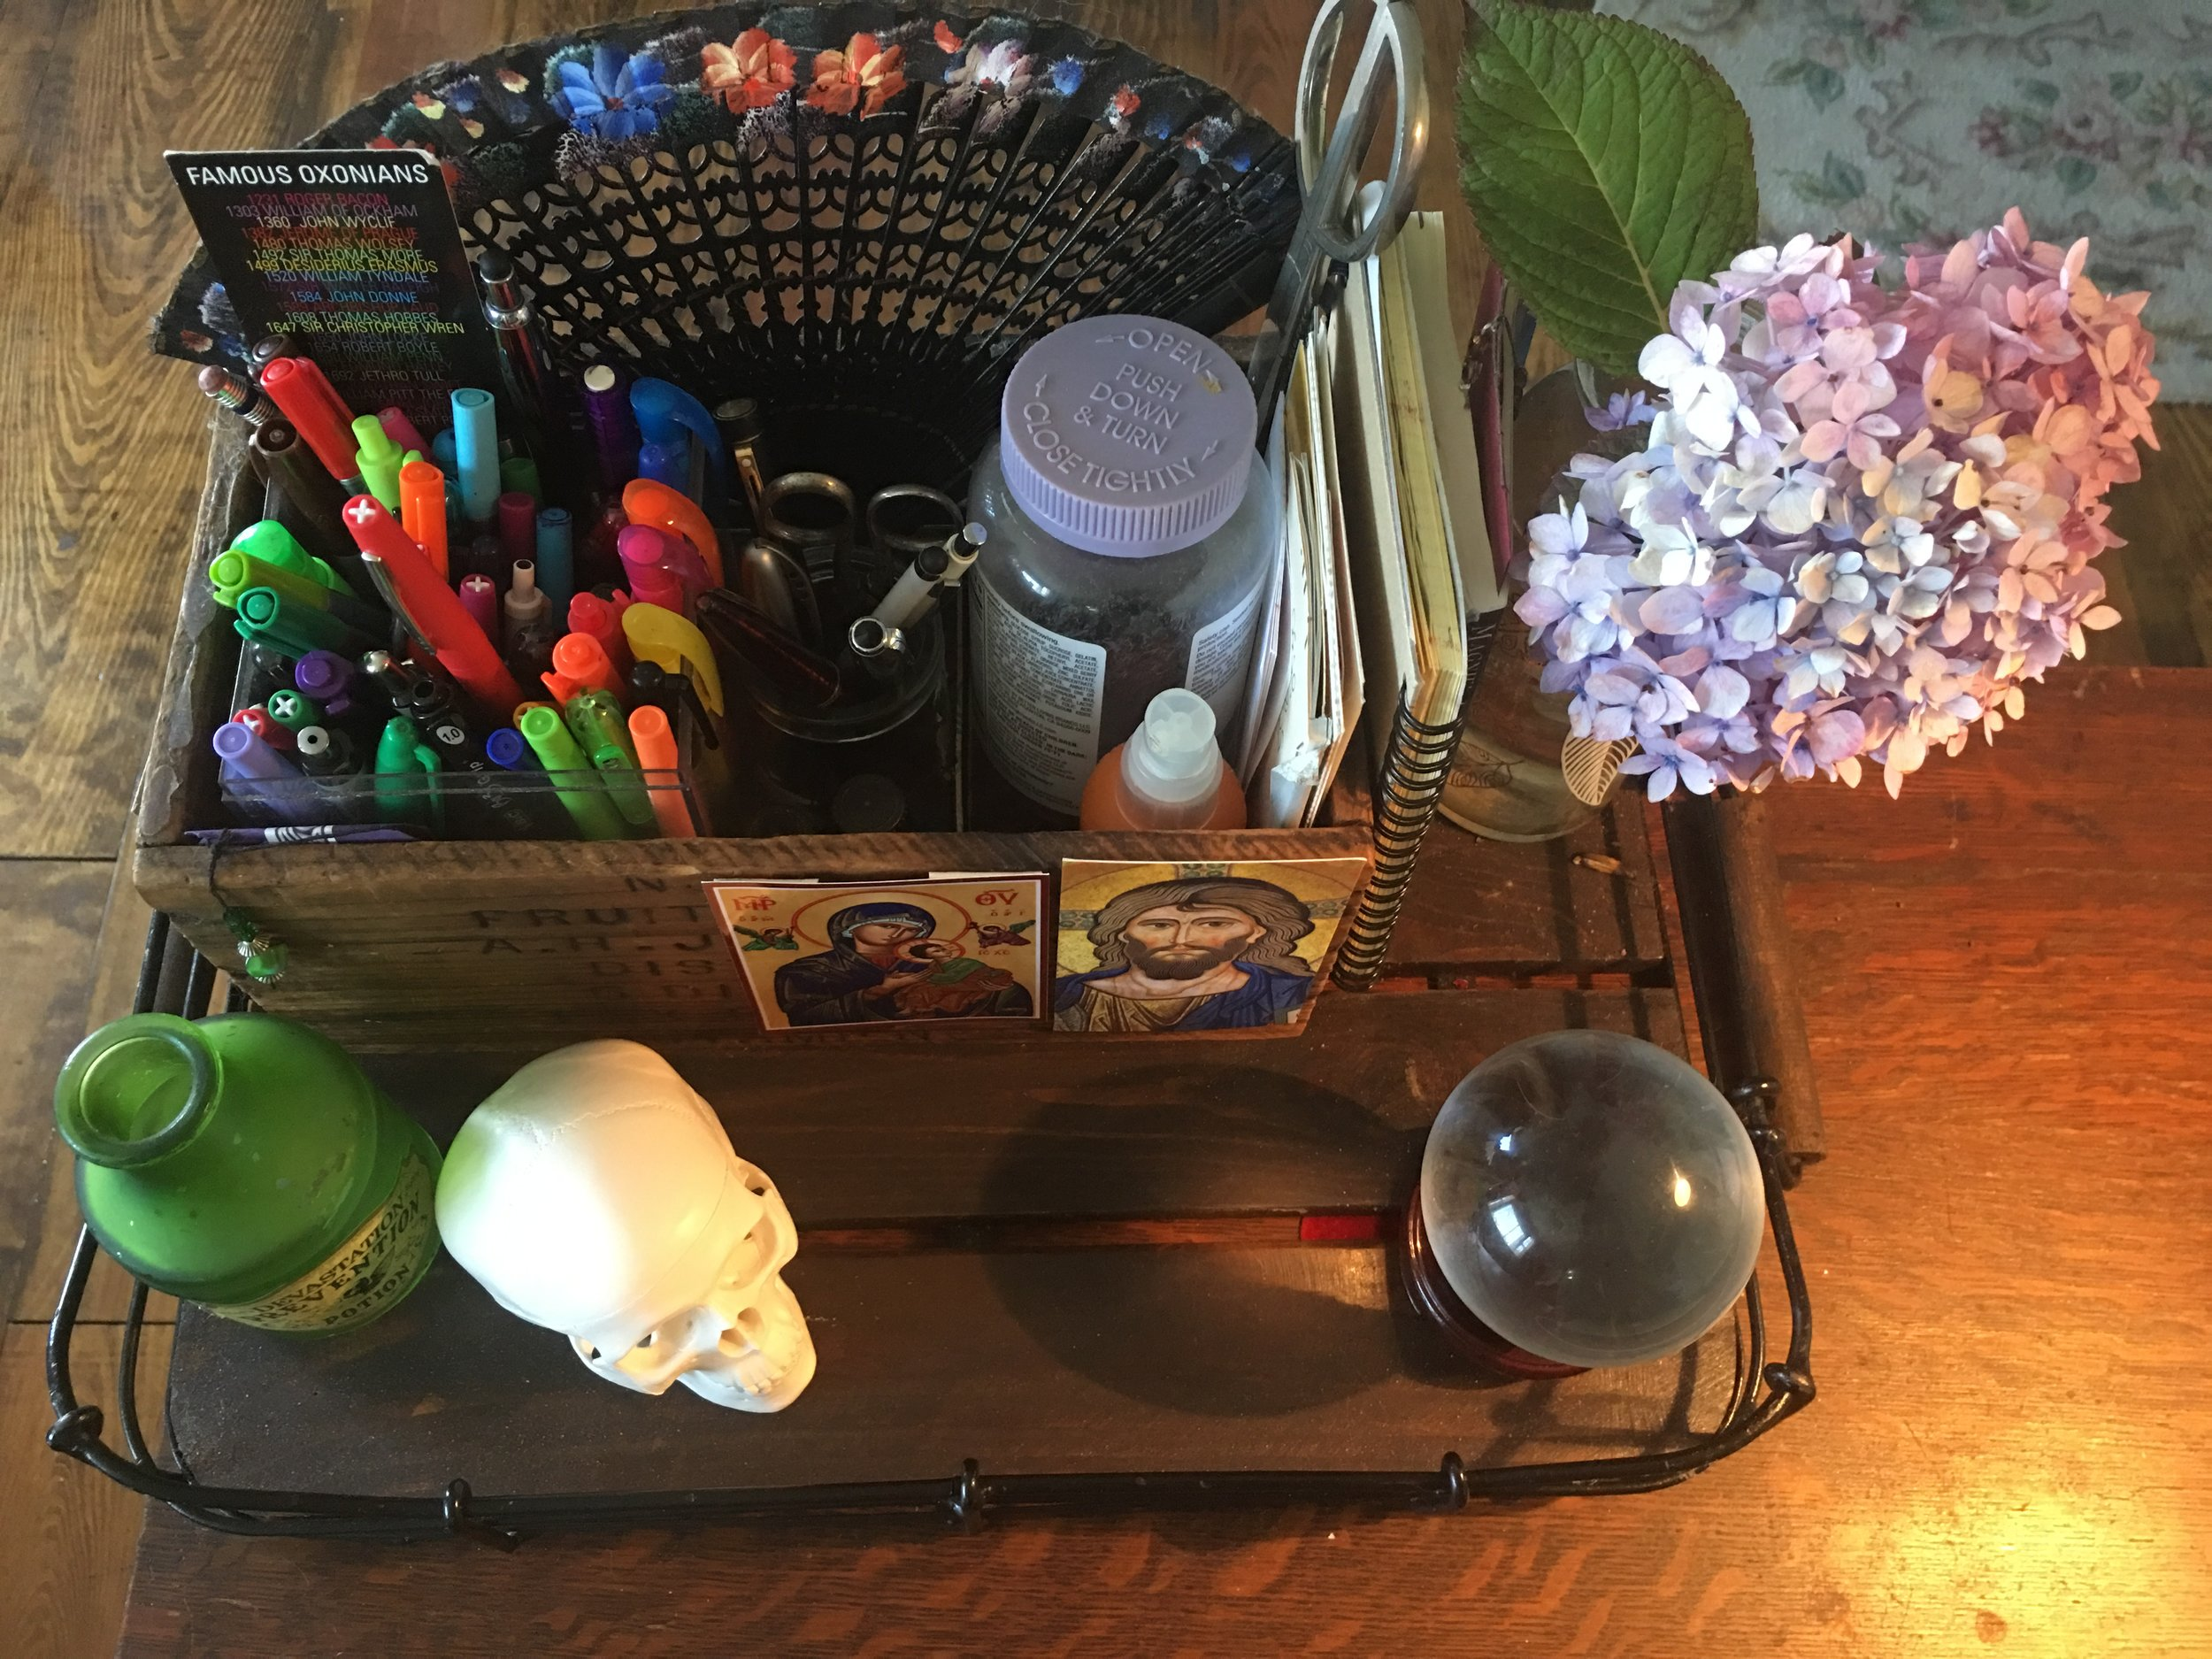 The tray that collects all my miscellaneous stuff. The skull is memento mori; the crystal ball tells me nothing about the future, but is useful to play with when I'm puzzling something out.